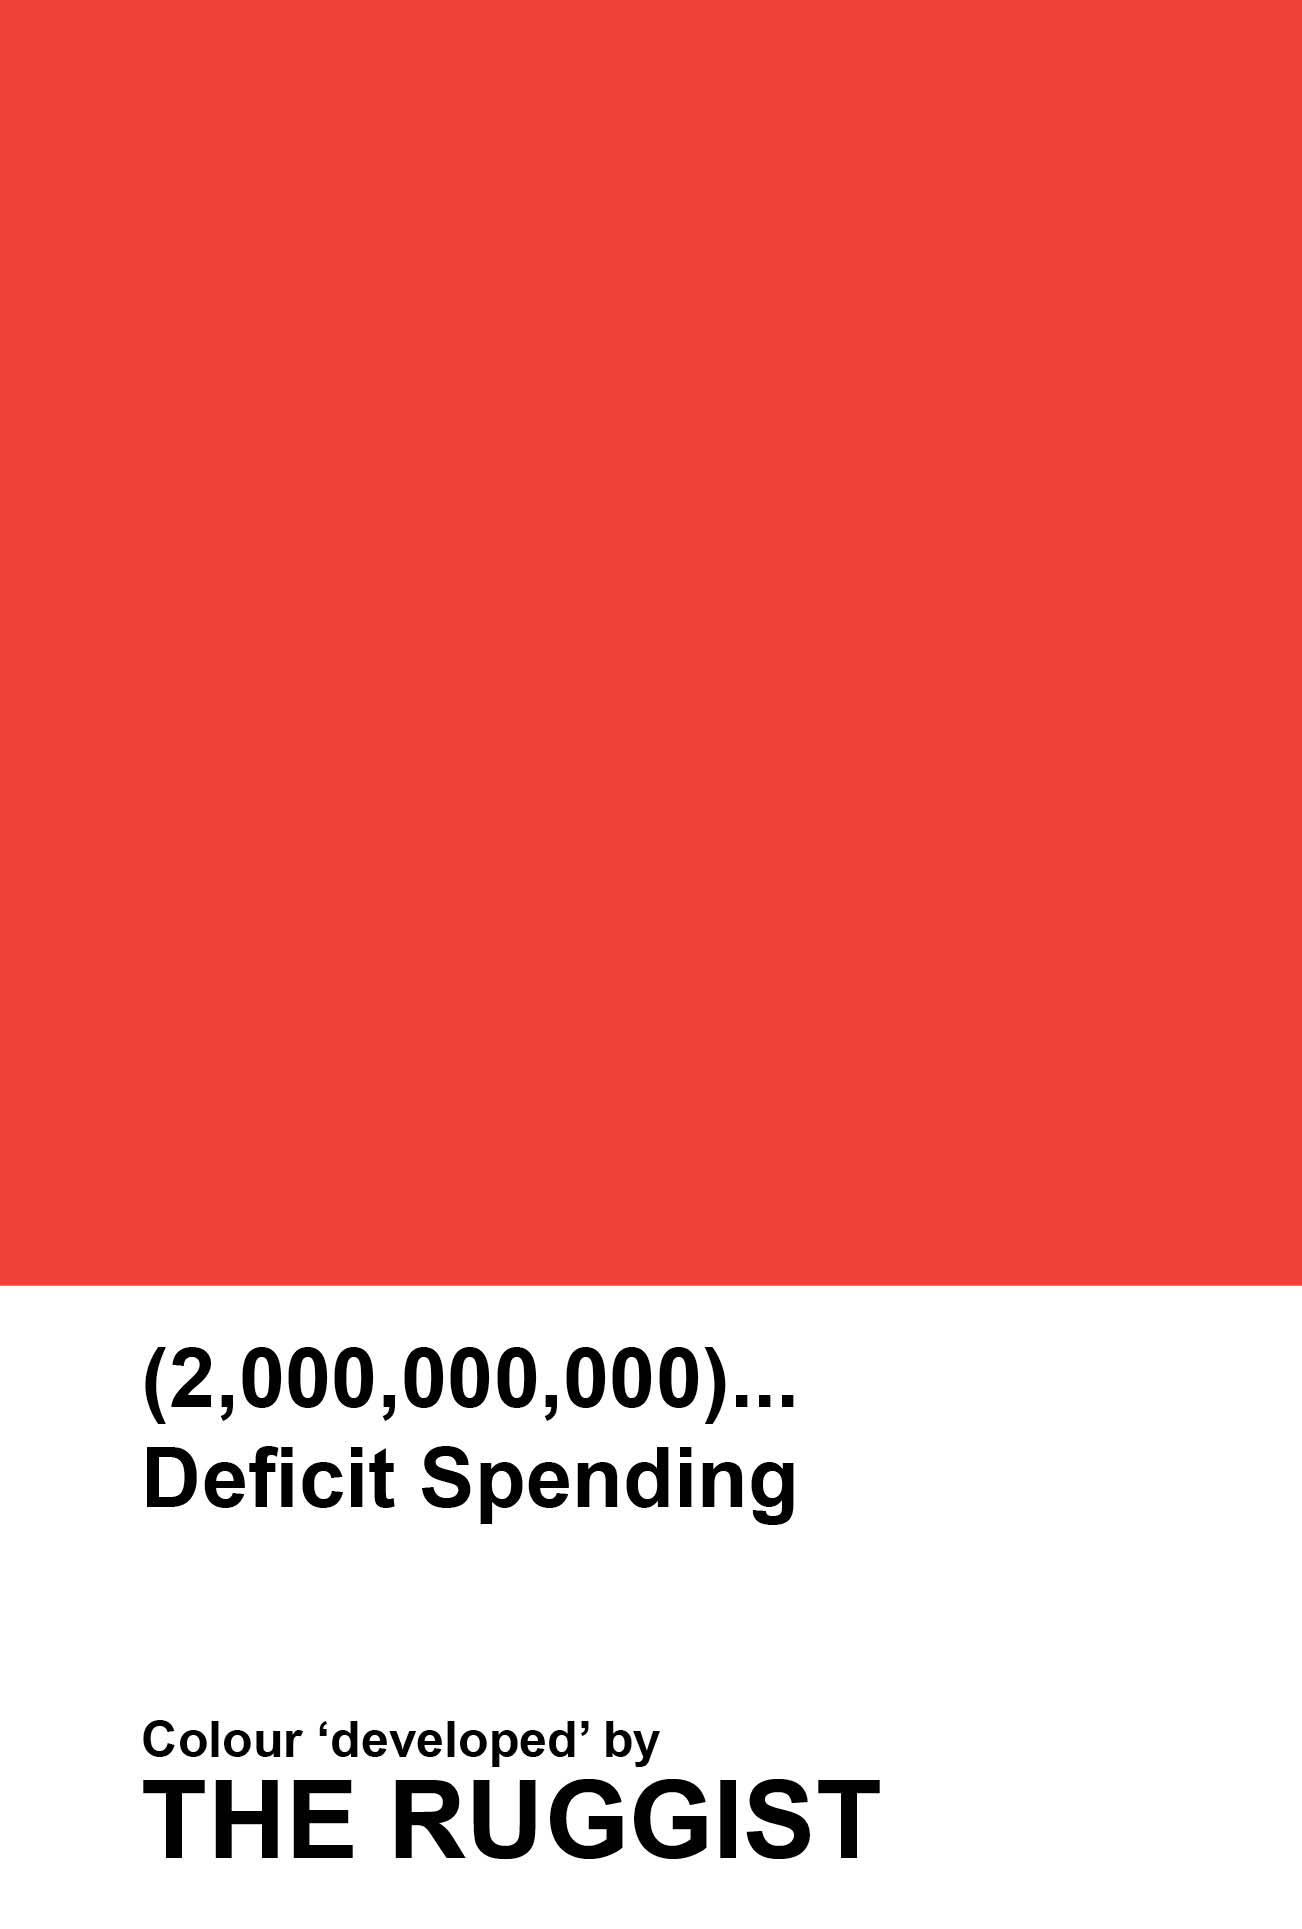 'Deficit Spending' colour reference as 'developed' by The Ruggist. | Image by The Ruggist.